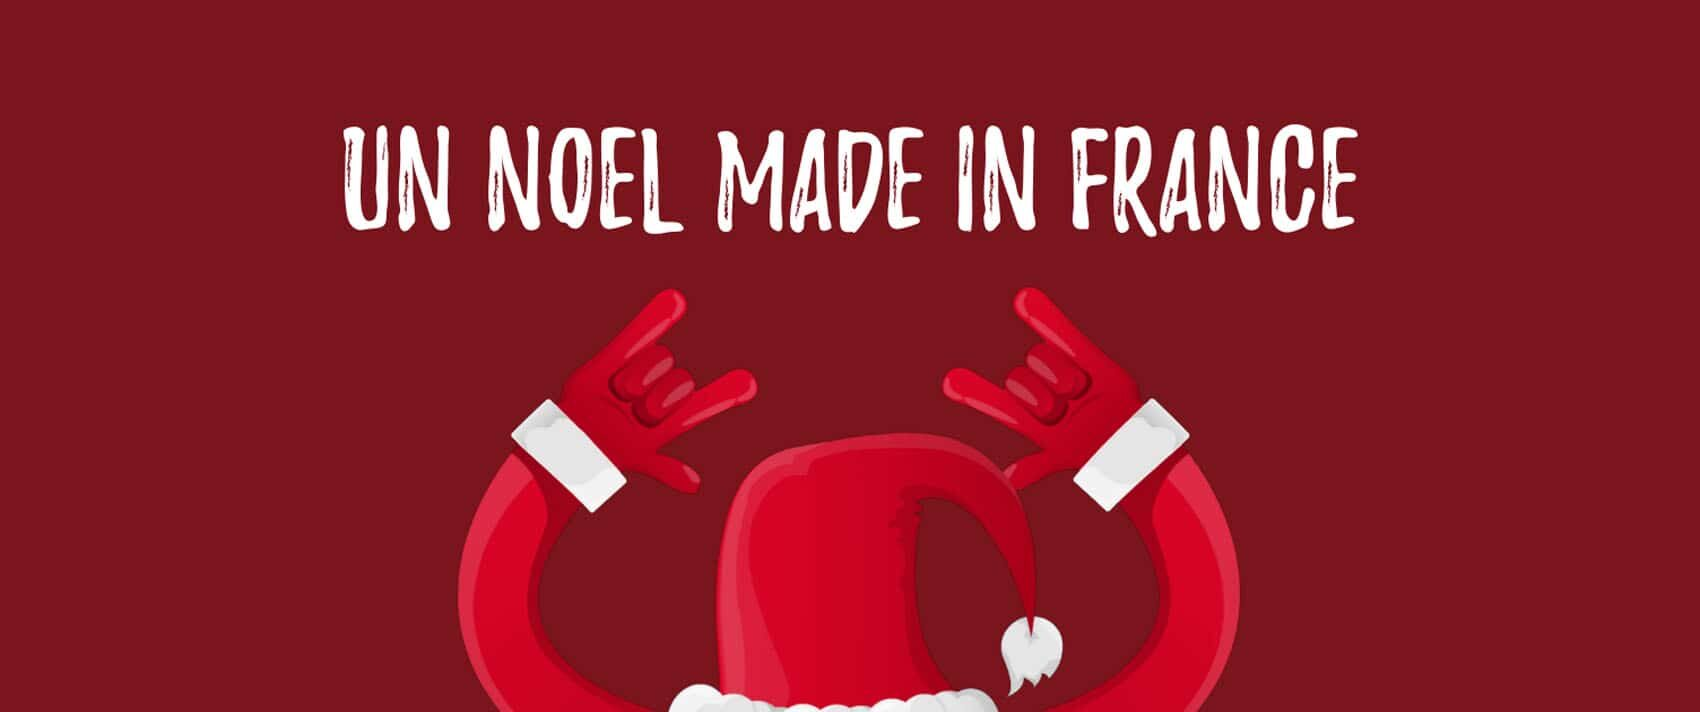 noel-made-in-france-tranquille-emile-banniere